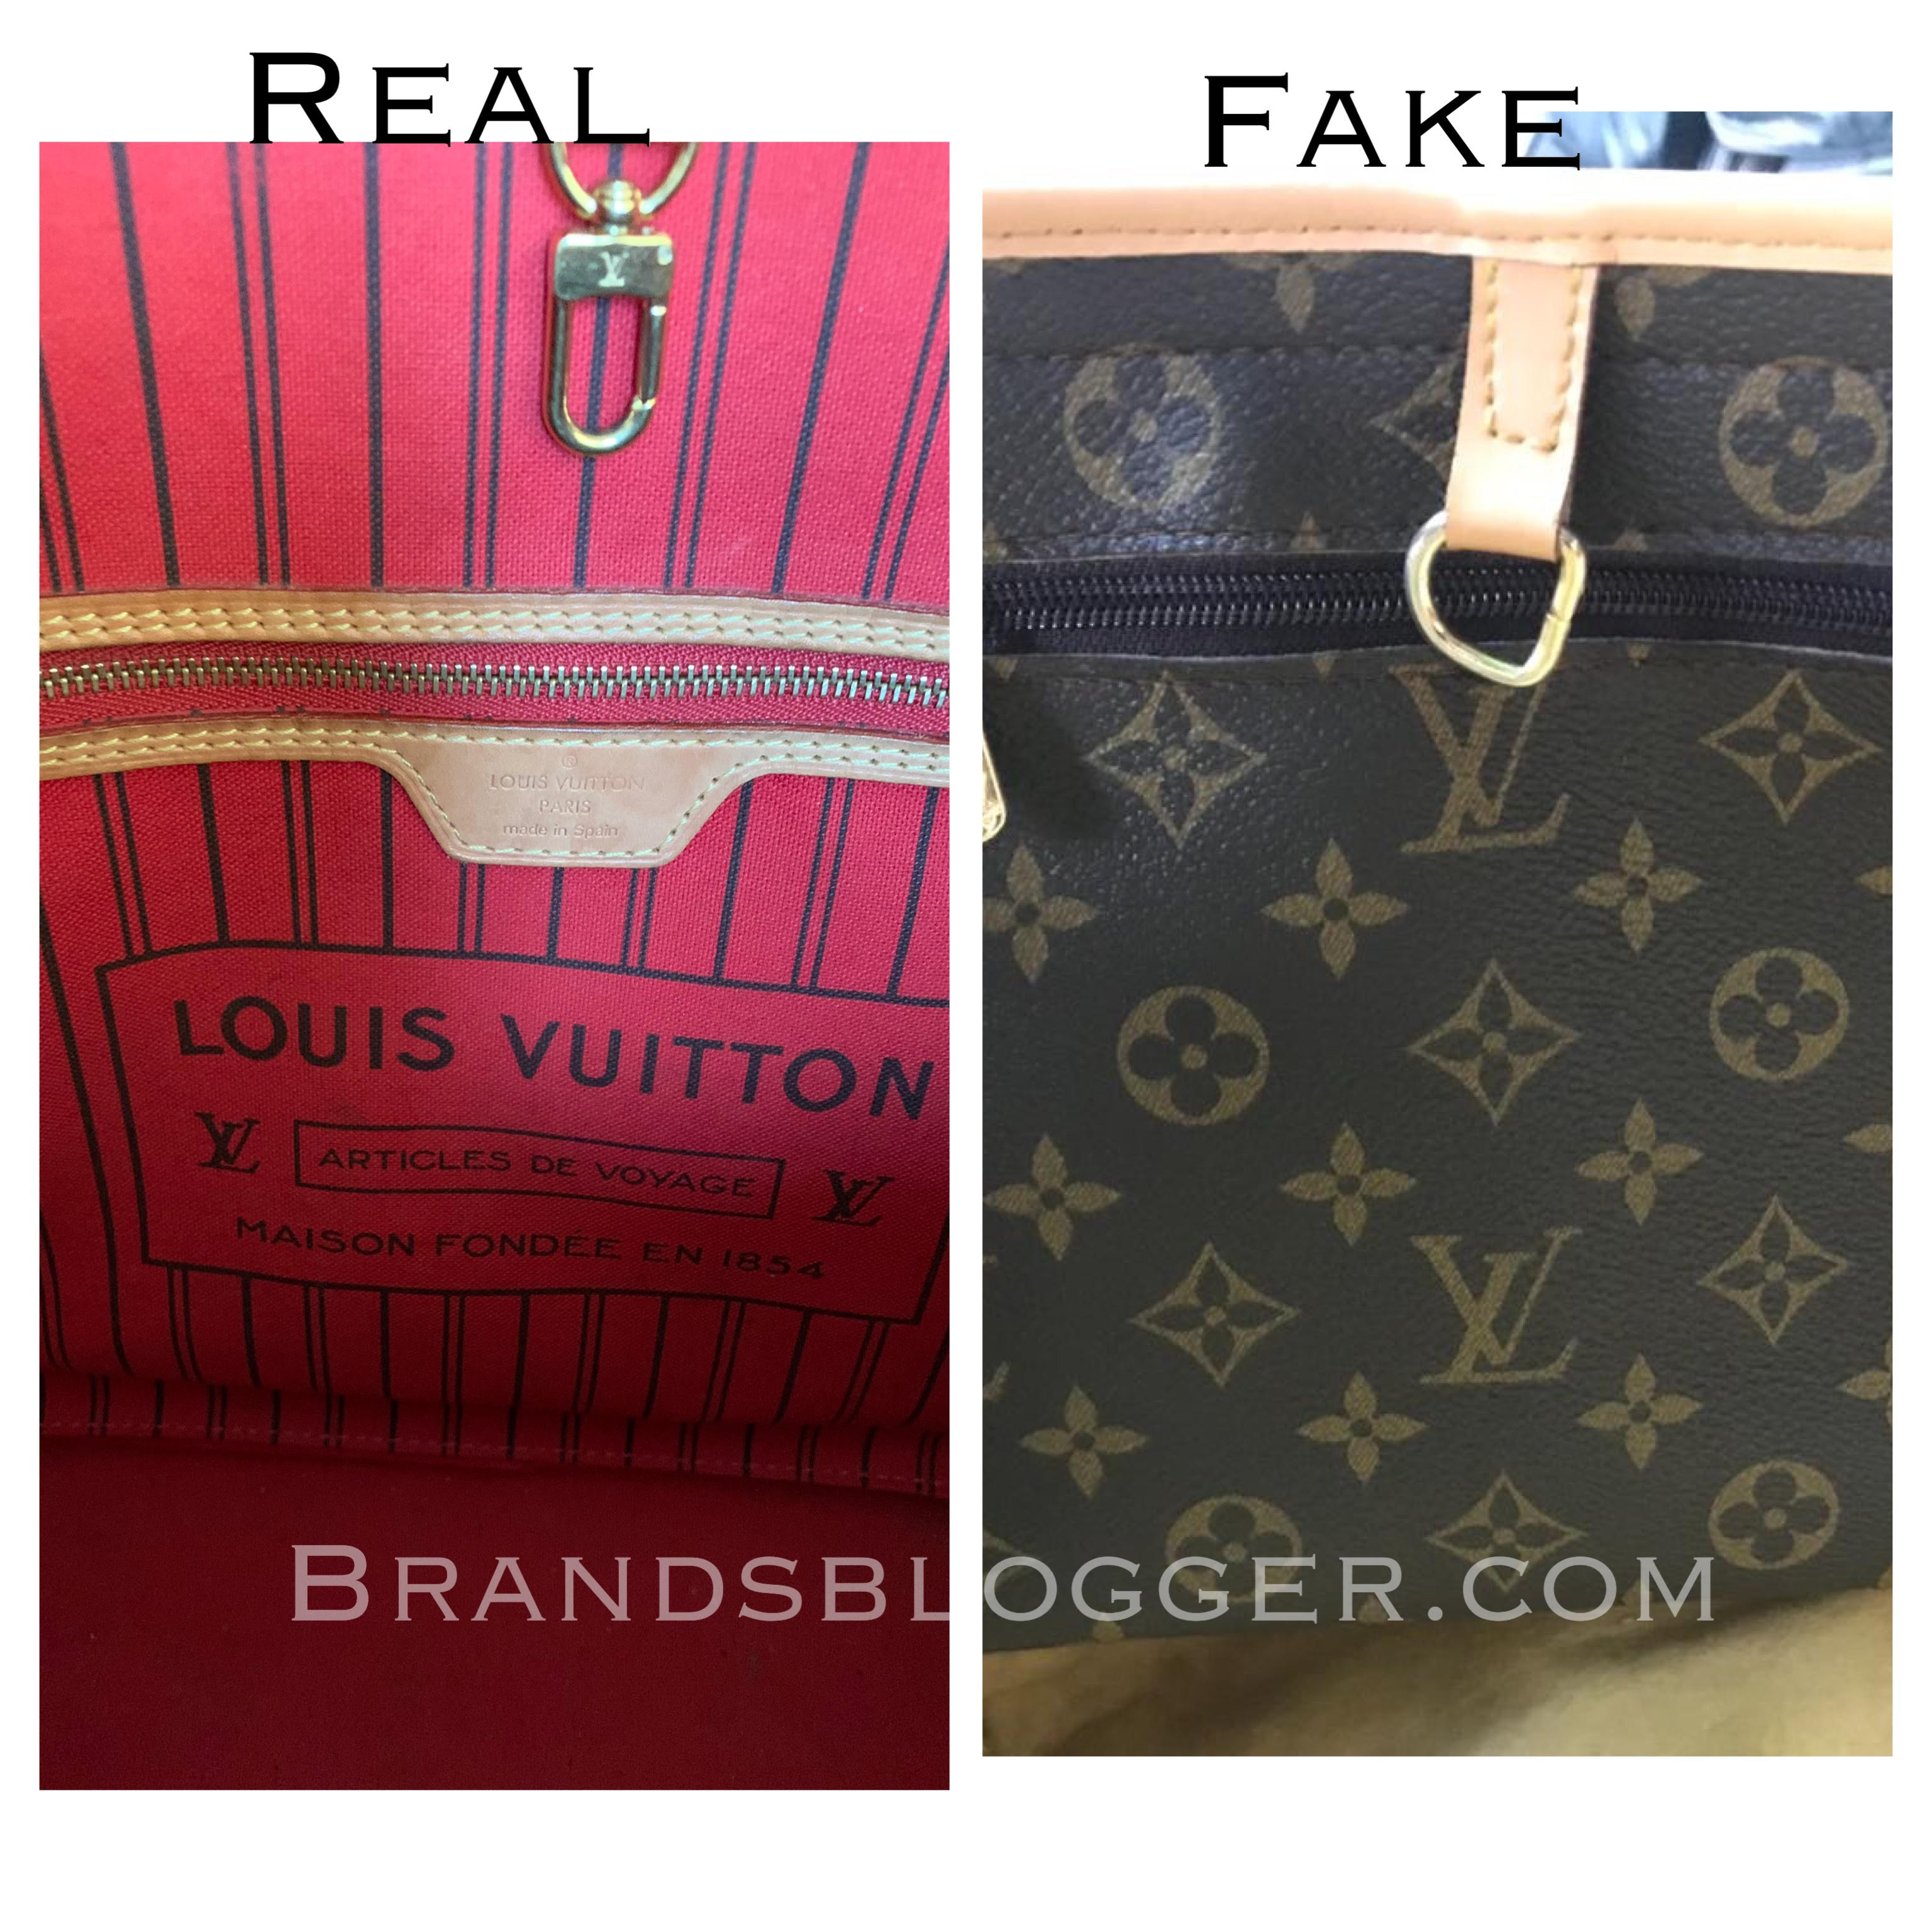 8c3b6399a897 If you want to see an authentic monogram pocket here is the picture of it